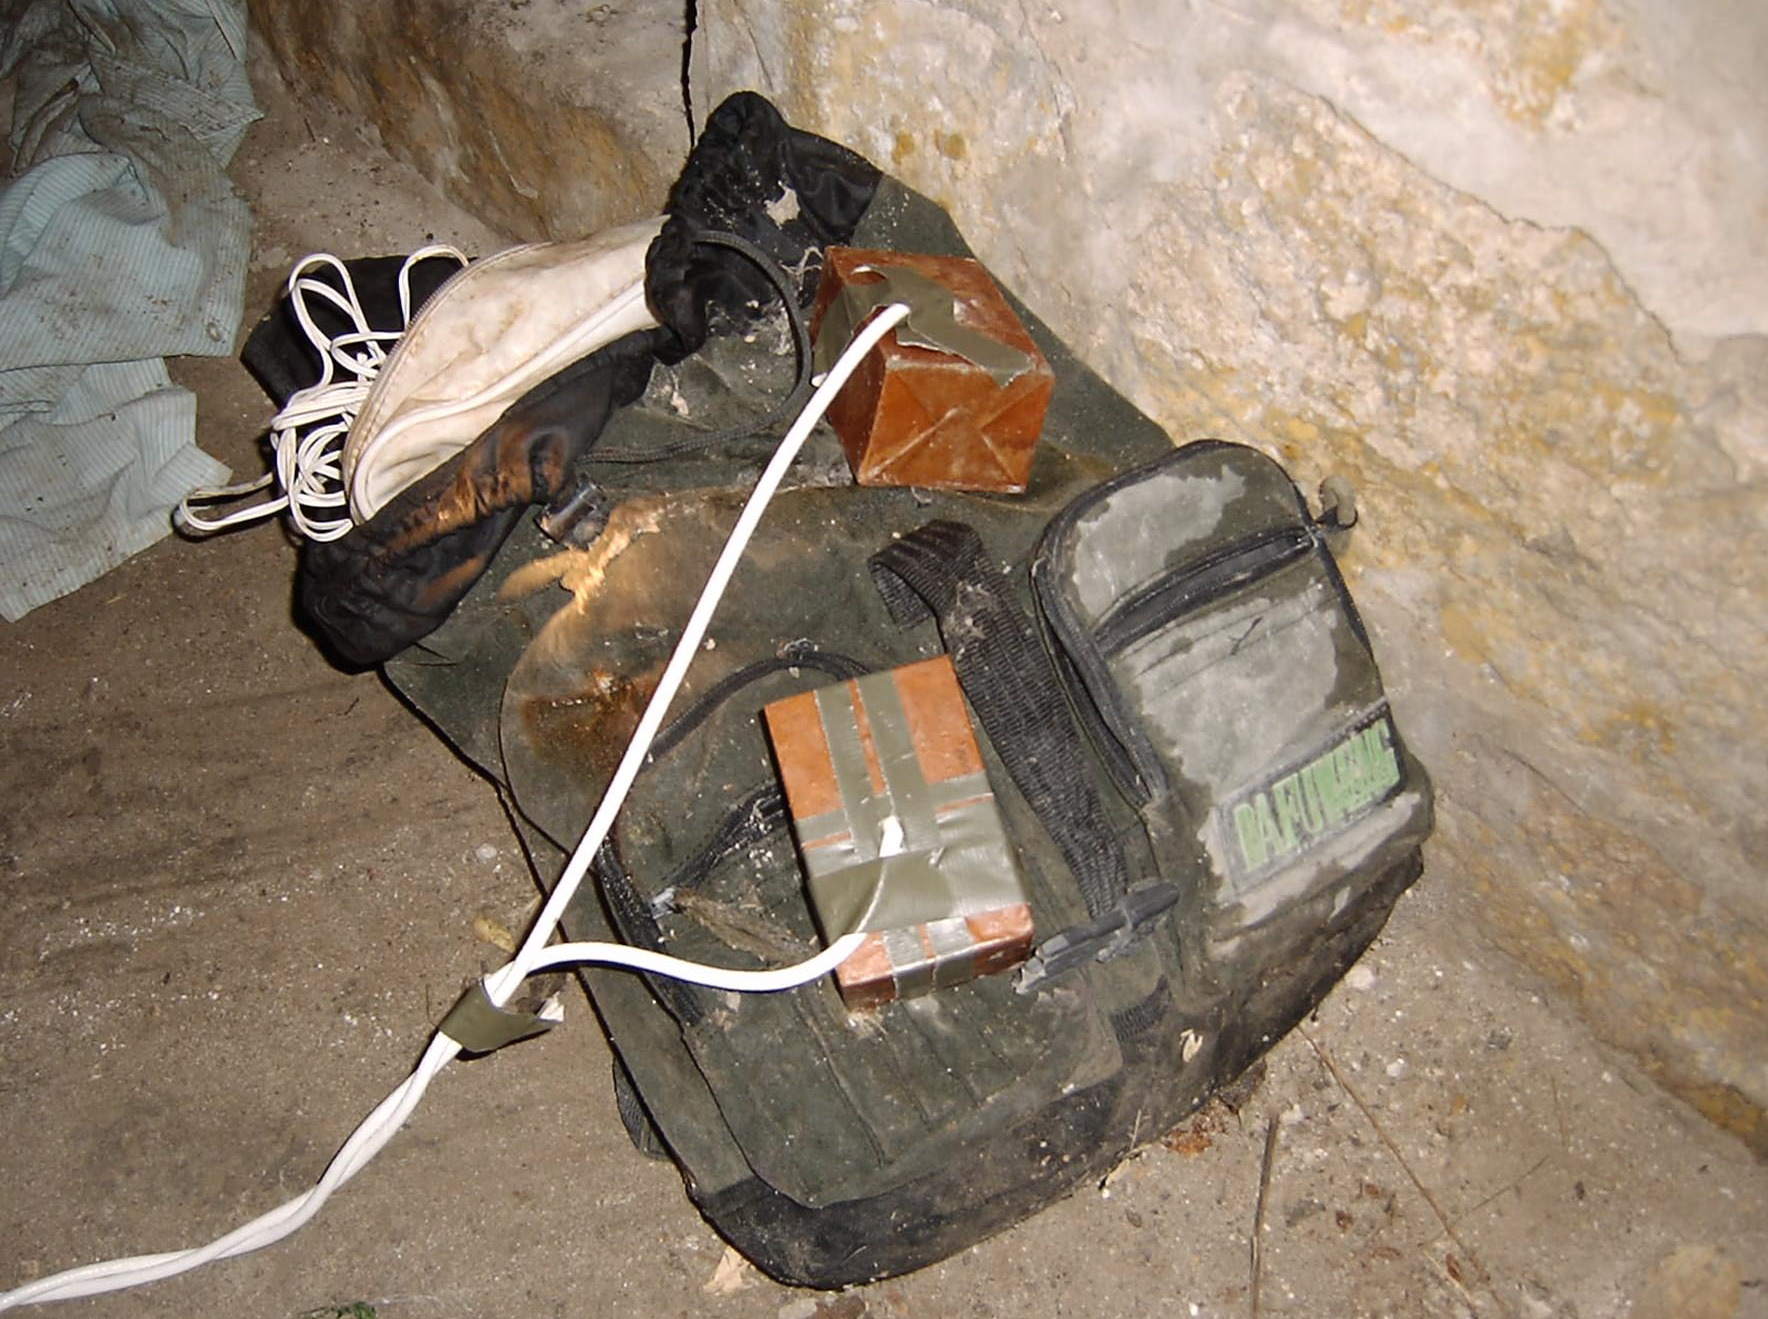 An example of a typical IED, featuring makeshift detonator assembly and backpack for carriage.